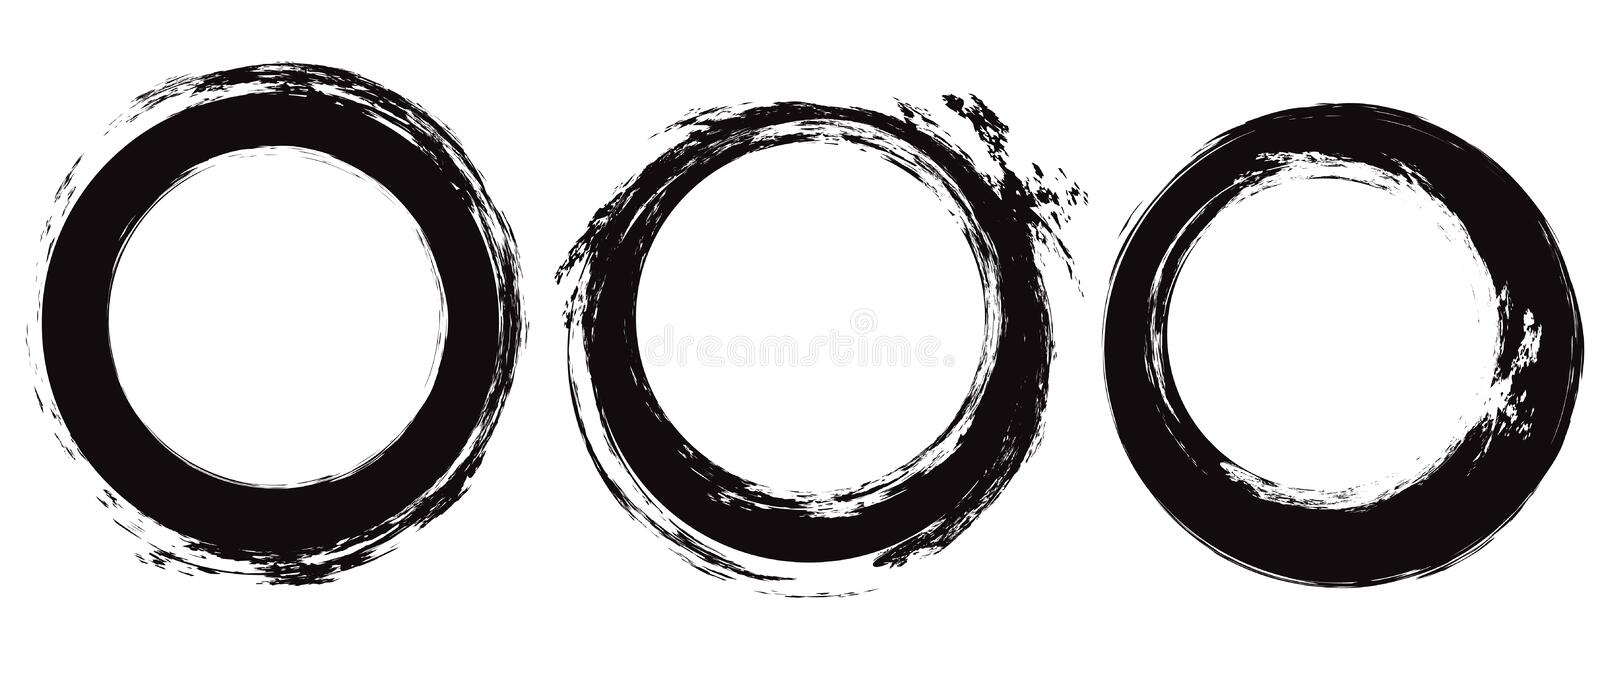 Set of black circle grunge strokes. Round ink brushstrokes. Objects separate from the background. Vector scratch elements royalty free illustration